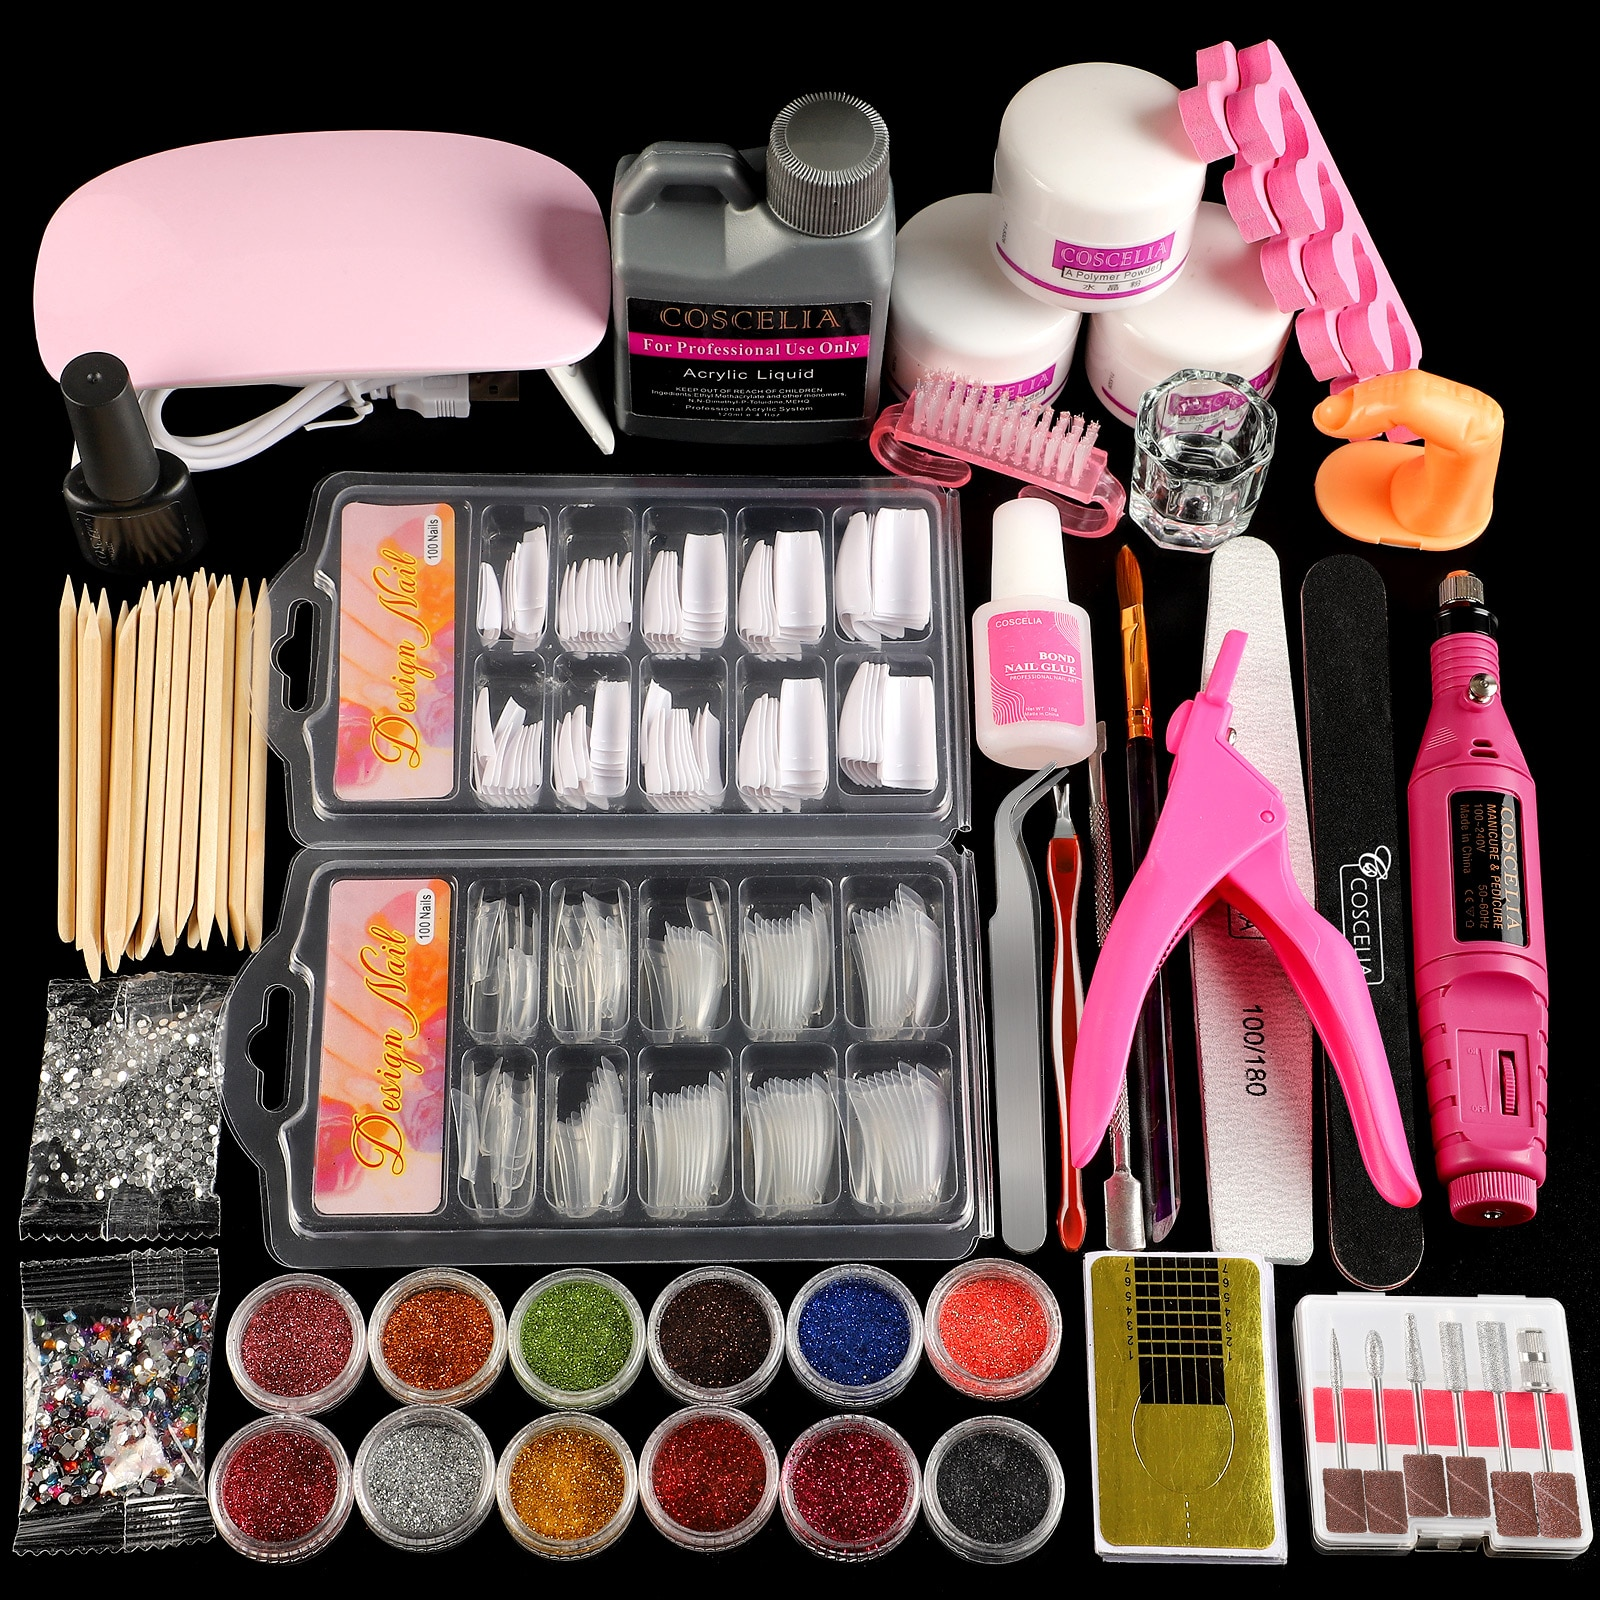 Acrylic Powder Set of Milling Cutters Nail Extension Set All For Manicure Gel Polish Set Nail Art De